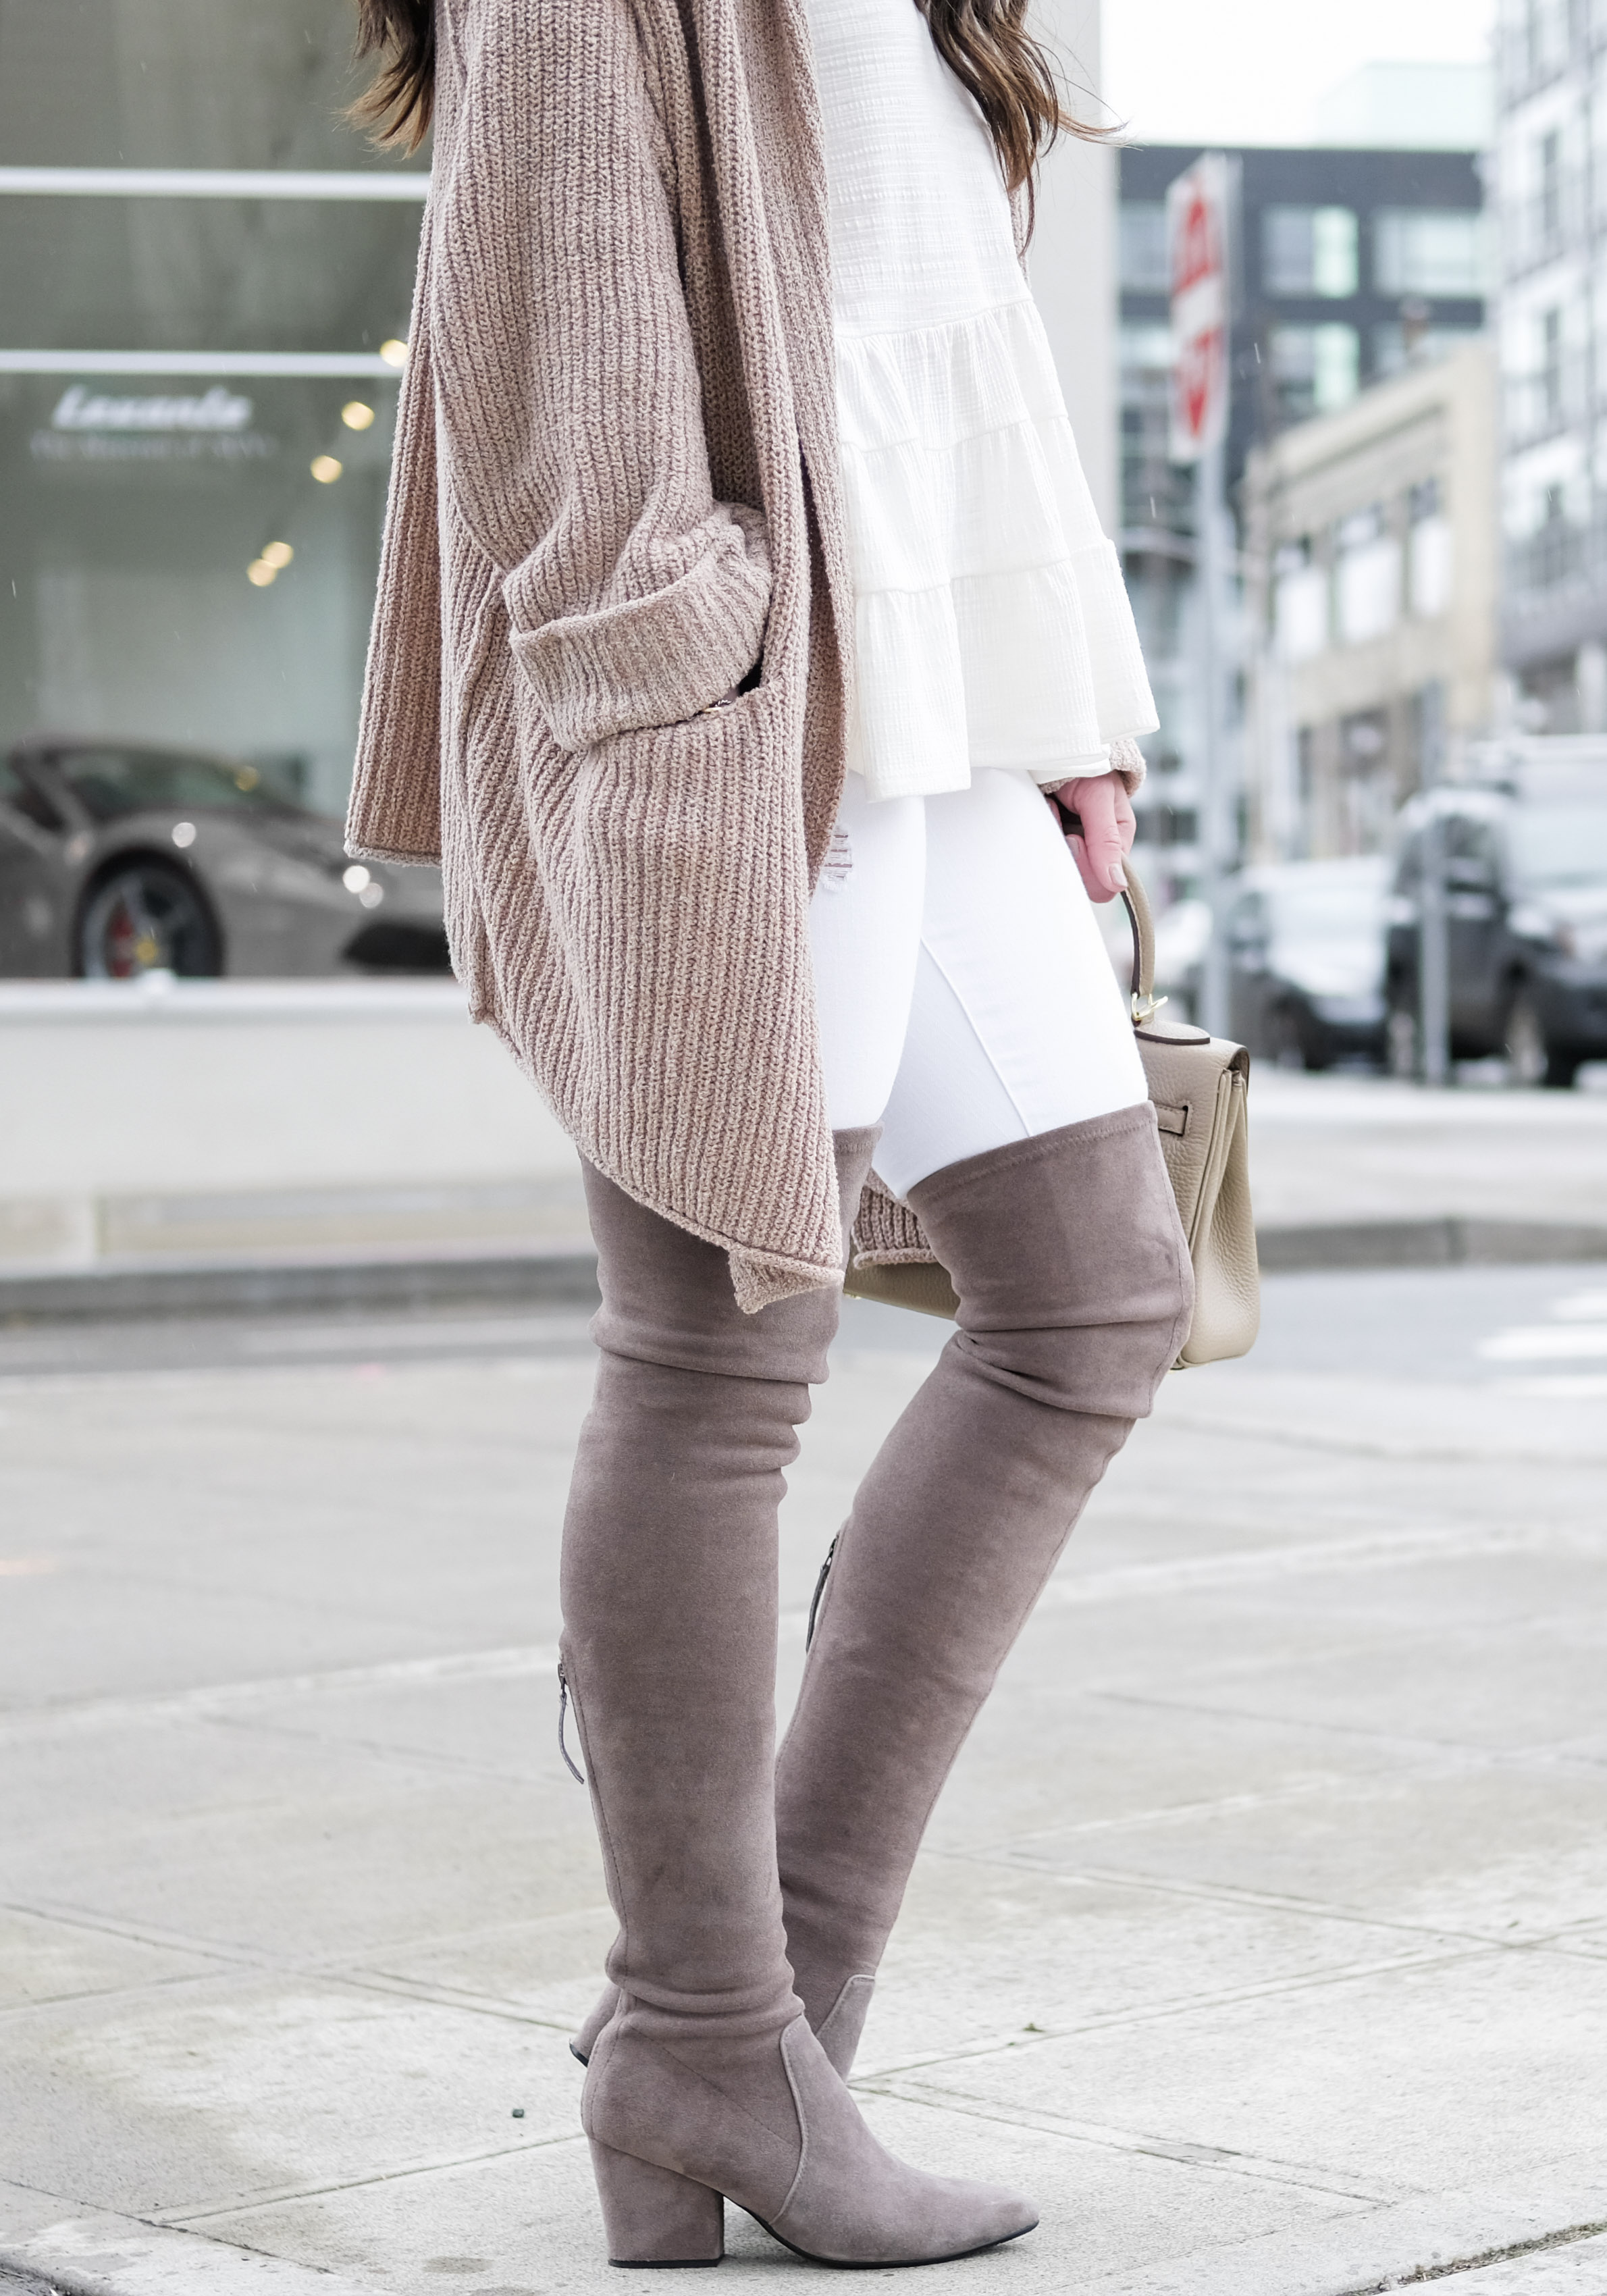 Over the knee boots outfit, Cute outfit for early spring, Goodnight Macaroon over the knee boots, Free People 'Low Tide' Cardigan, white top with white skinny jeans, and $109 Hermes Kelly look alike bag.